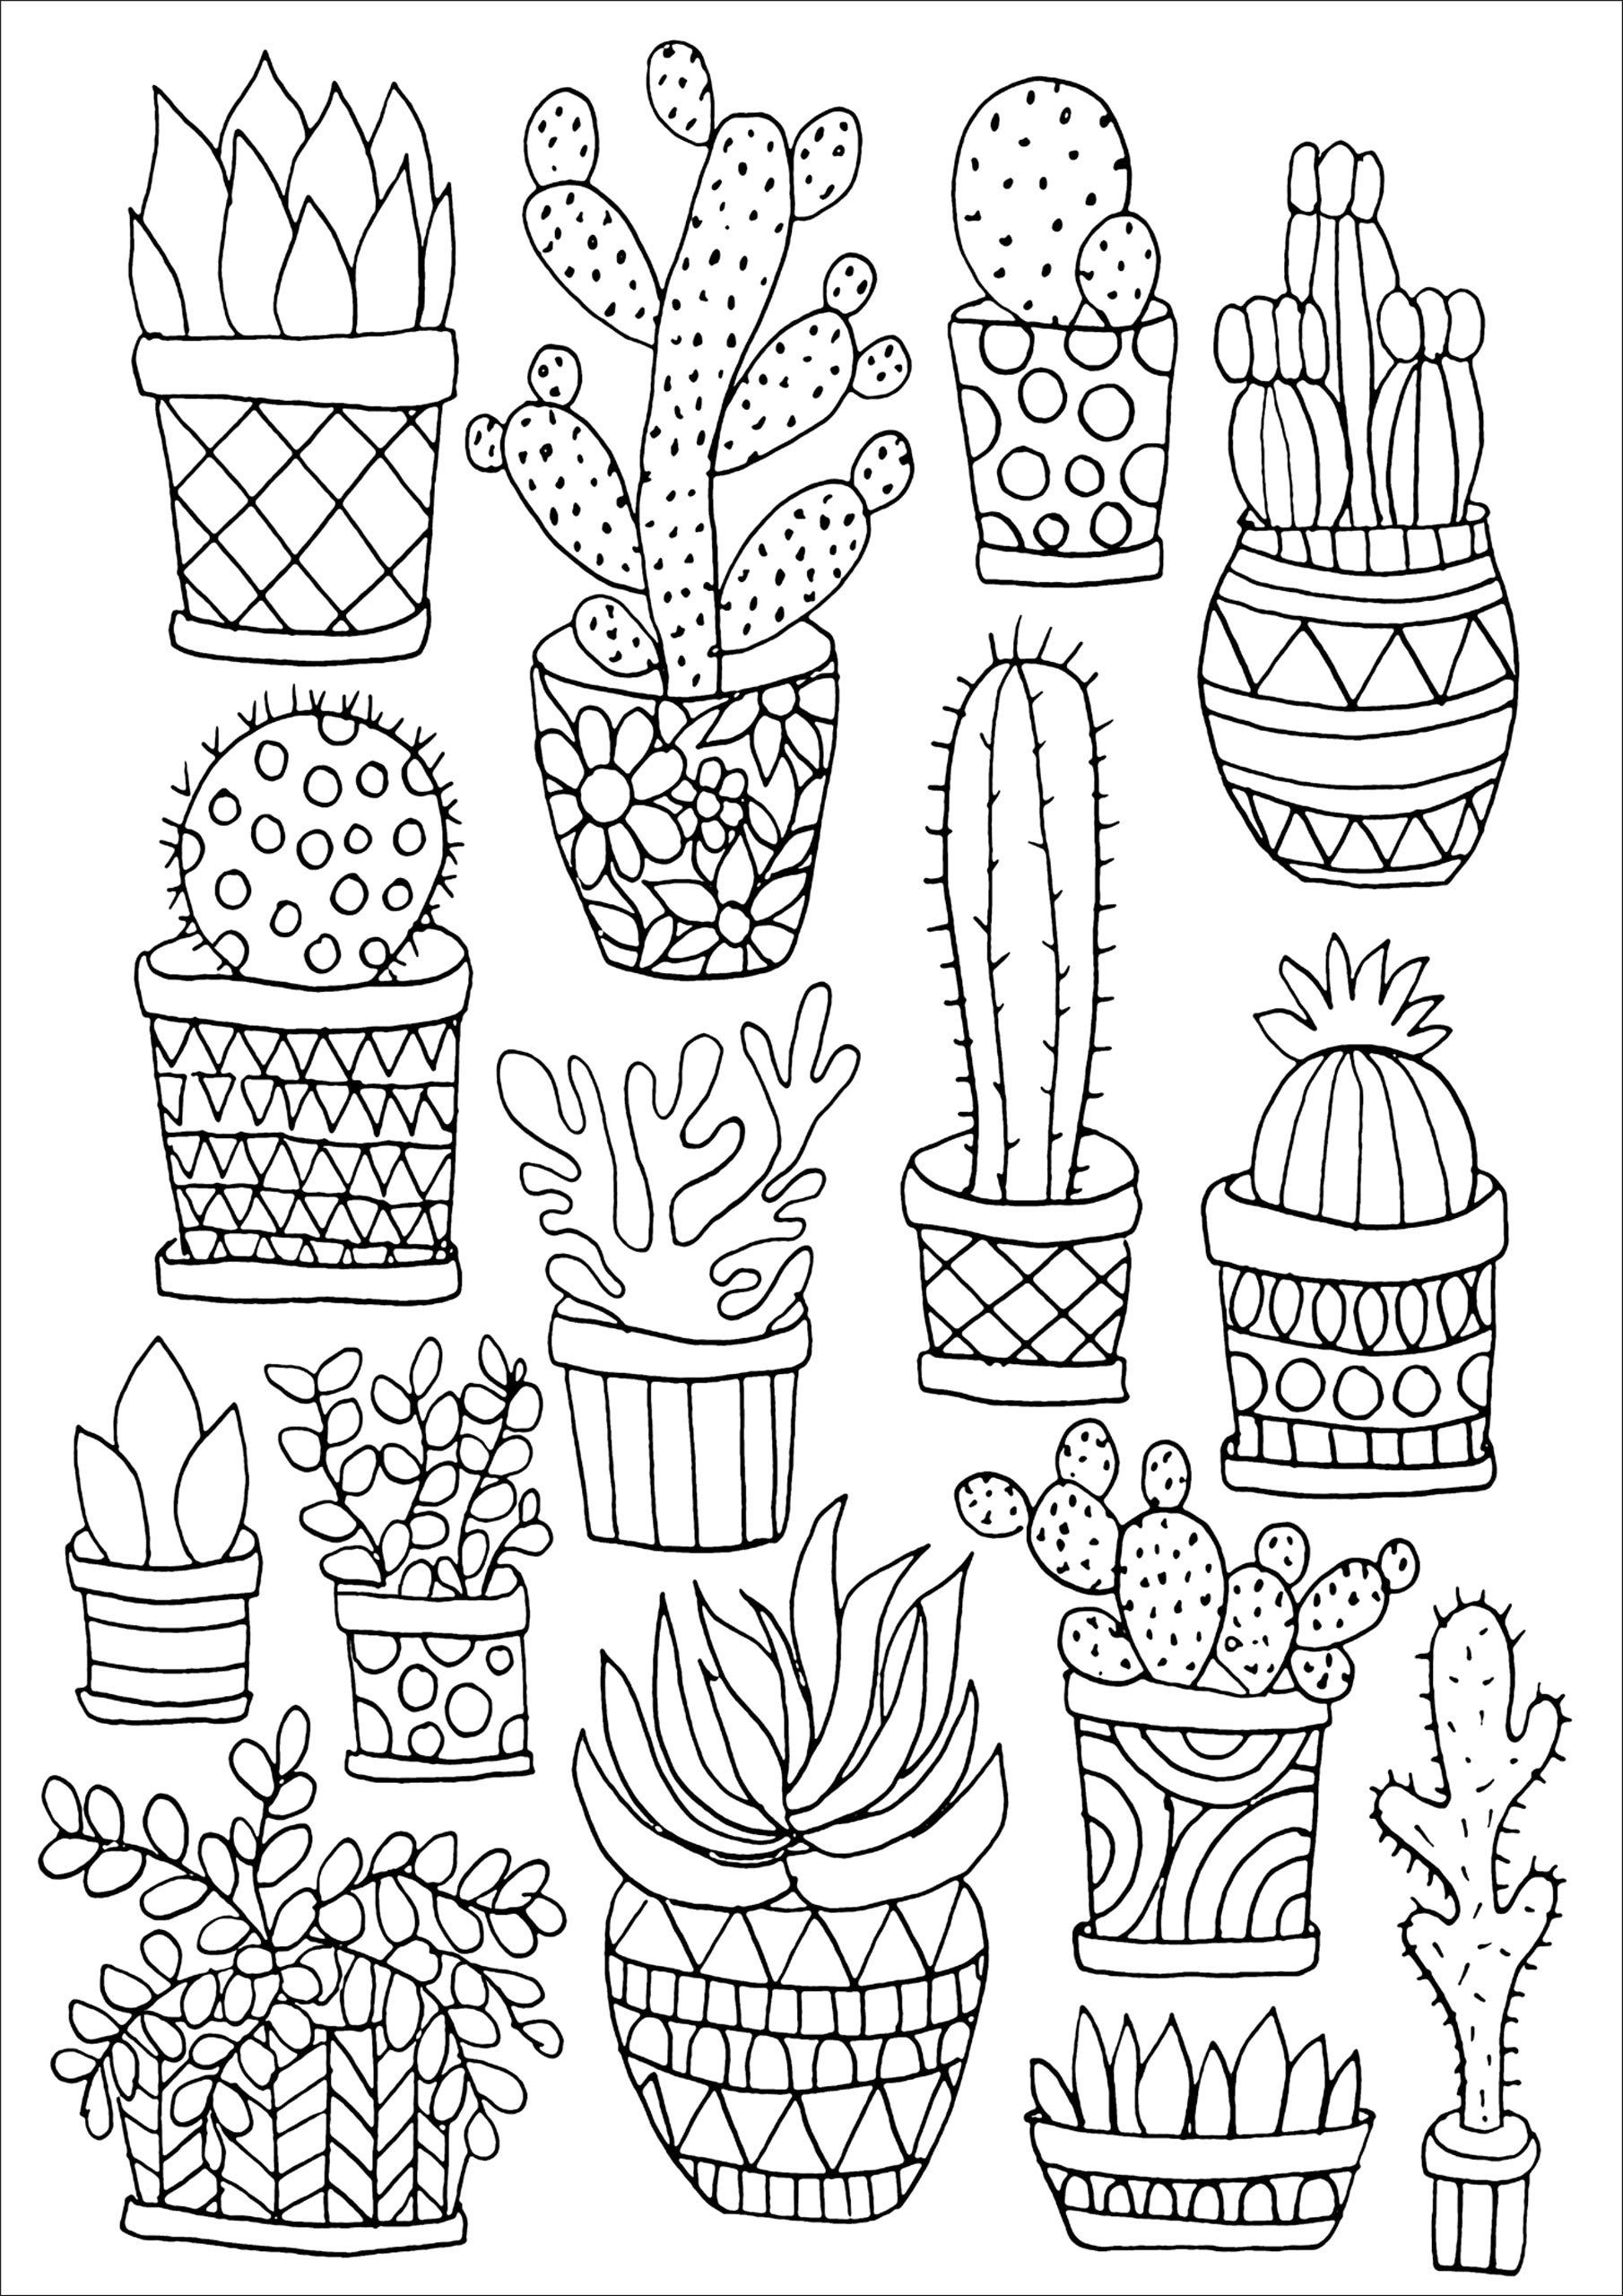 amazonsmile  succulents portable adult coloring book  31